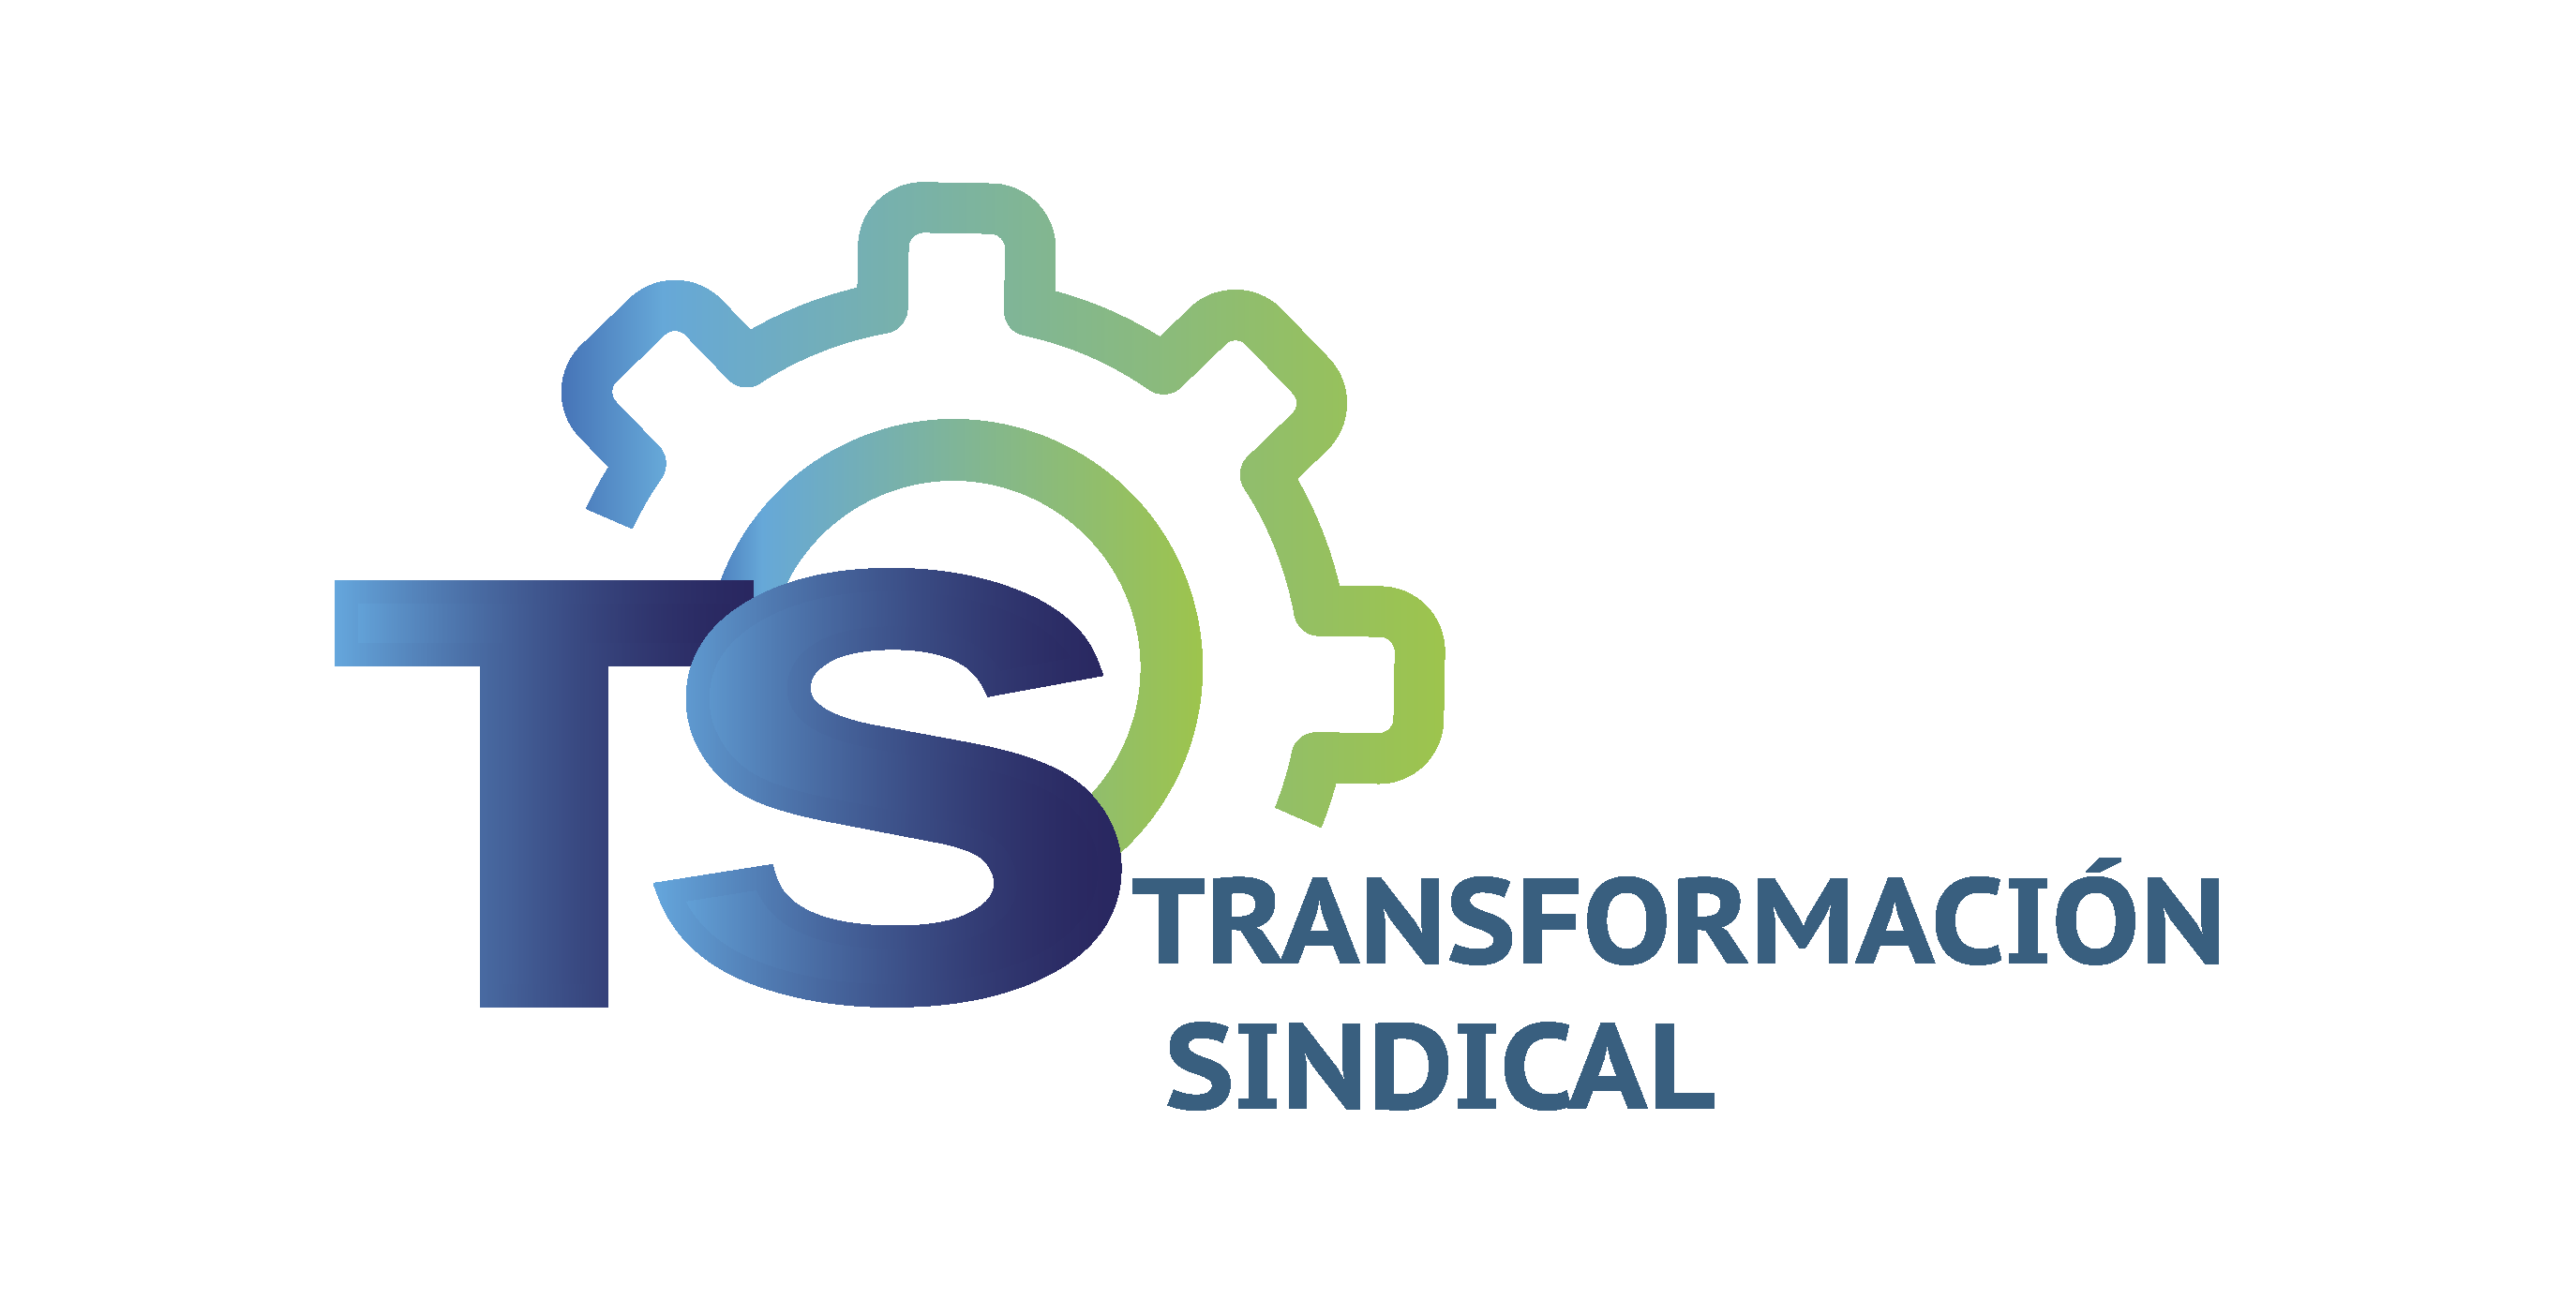 TRANSFORMACIÓN SINDICAL